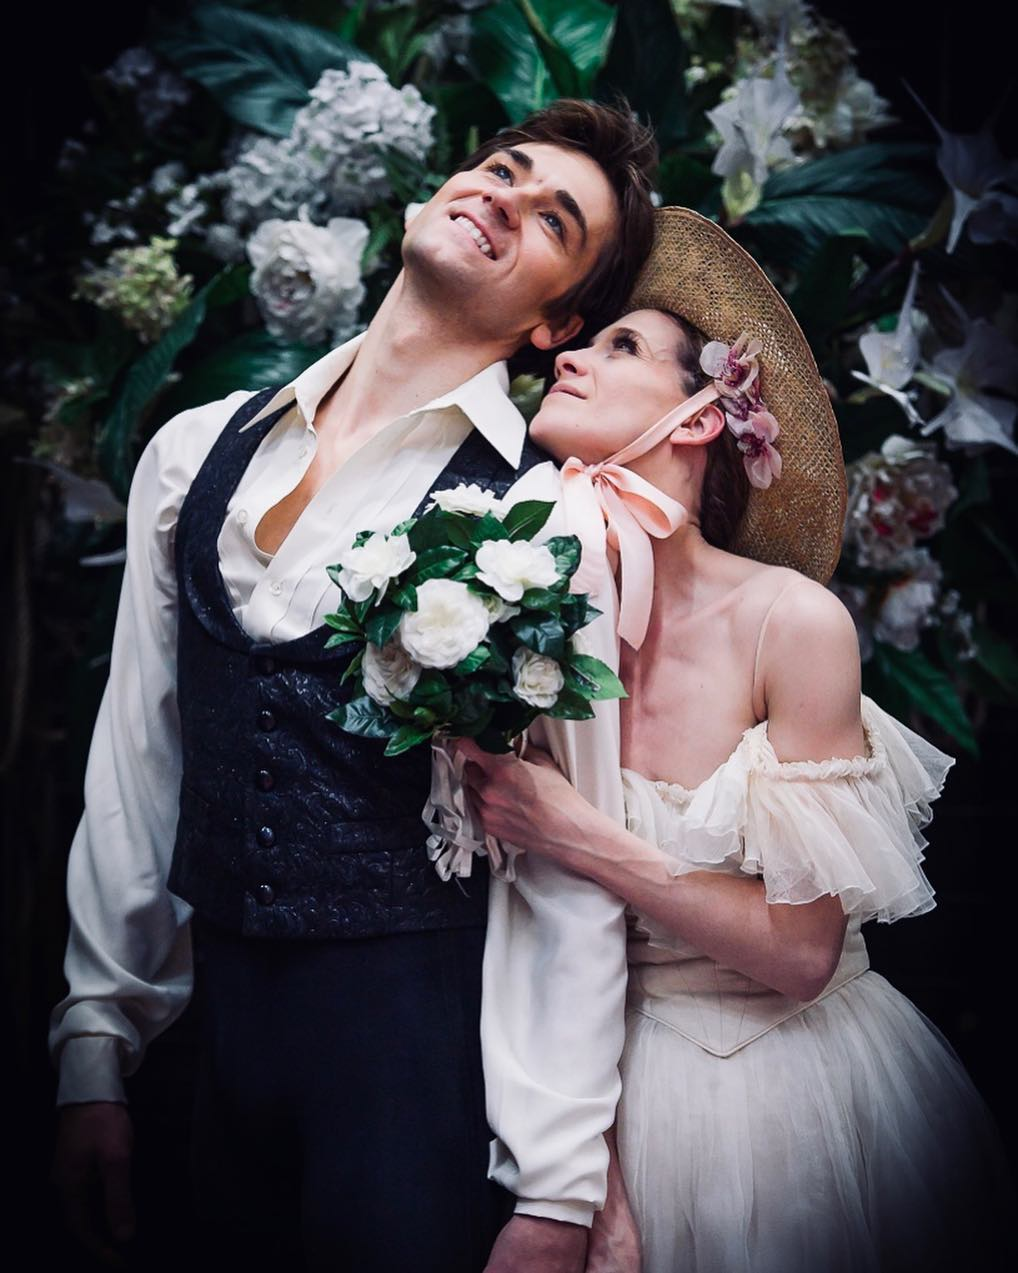 Friedemann Vogel as Armand Duval and Alicia Amatriain as Marguerite Gautier. Photo © Stuttgart Ballet